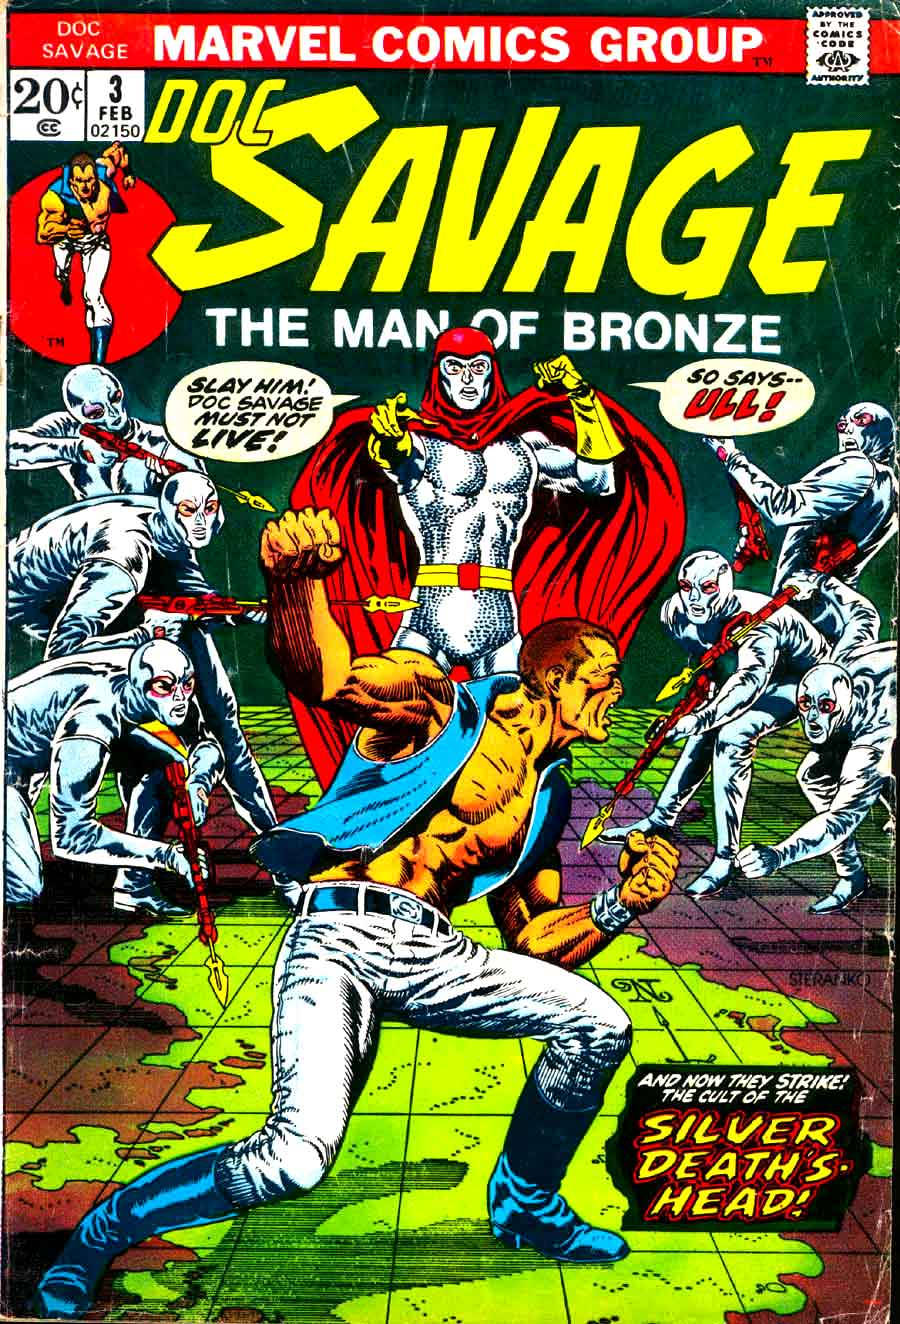 Doc Savage v2 #3 marvel bronze age comic book cover art by Jim Steranko